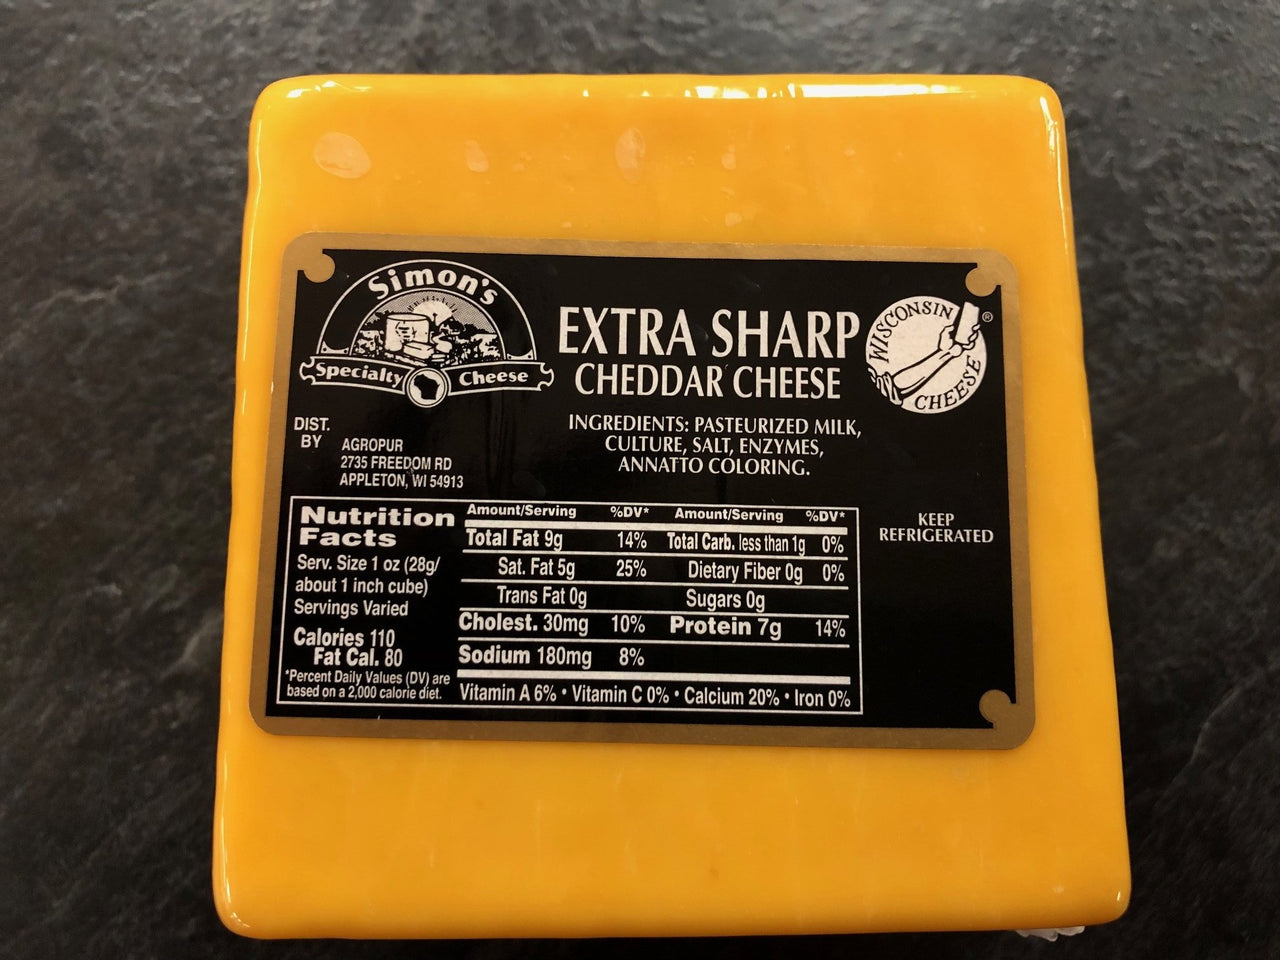 Simon's 3 Year Old Extra Sharp Cheddar